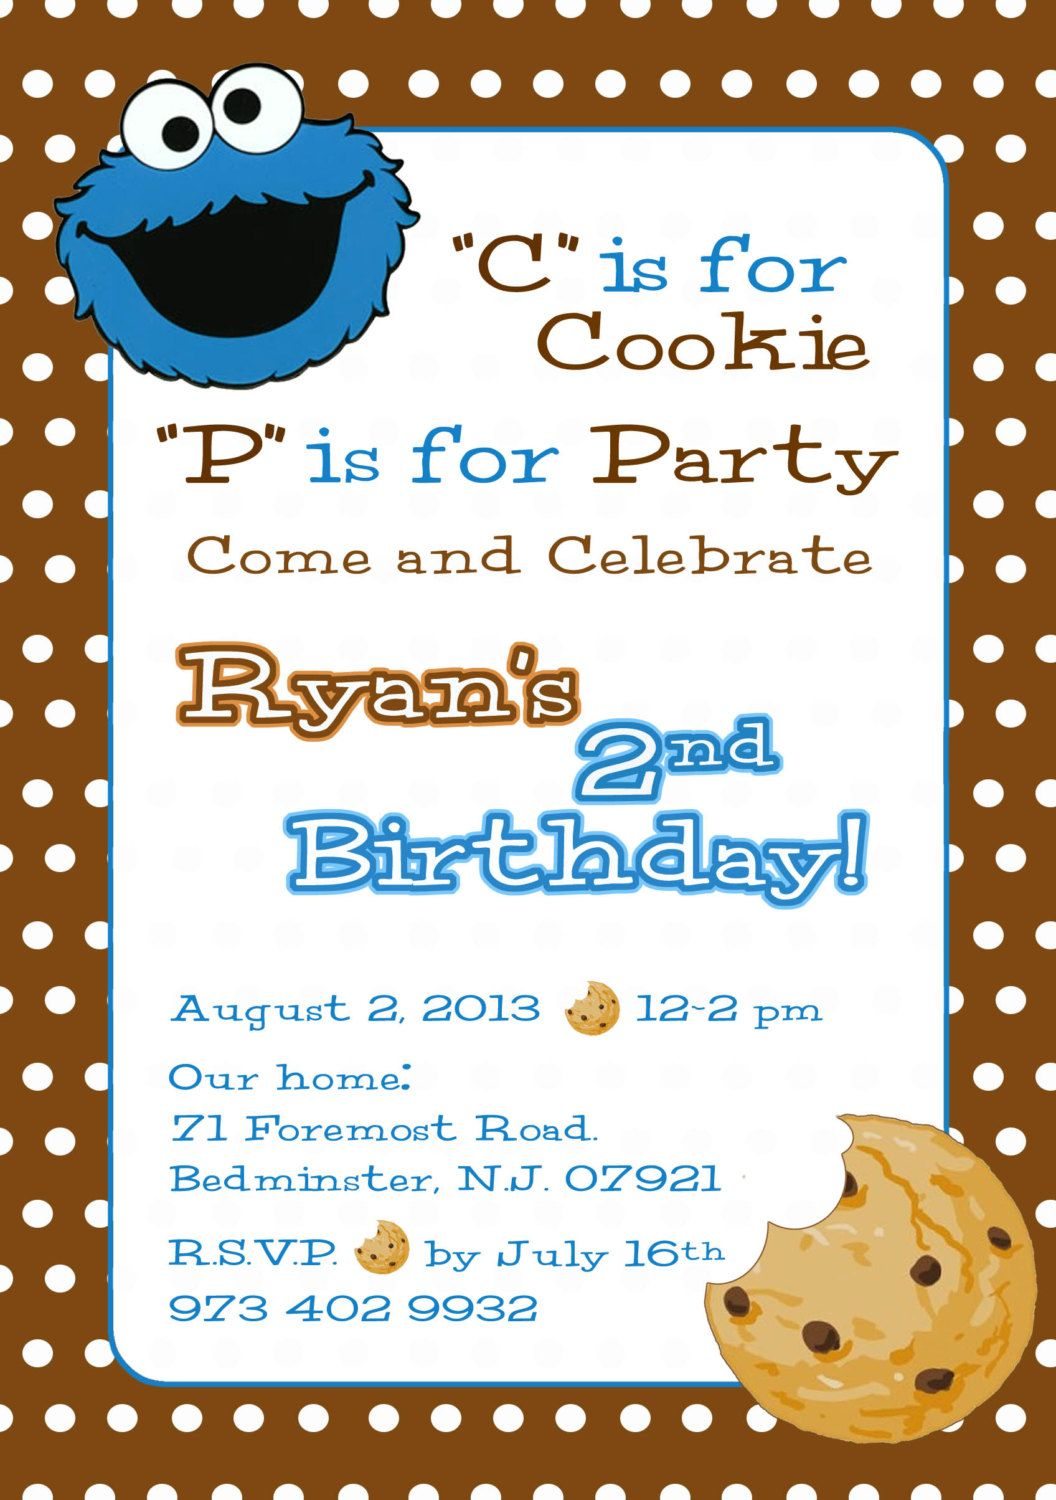 Handmade Cookie Monster Invitations File Name Il